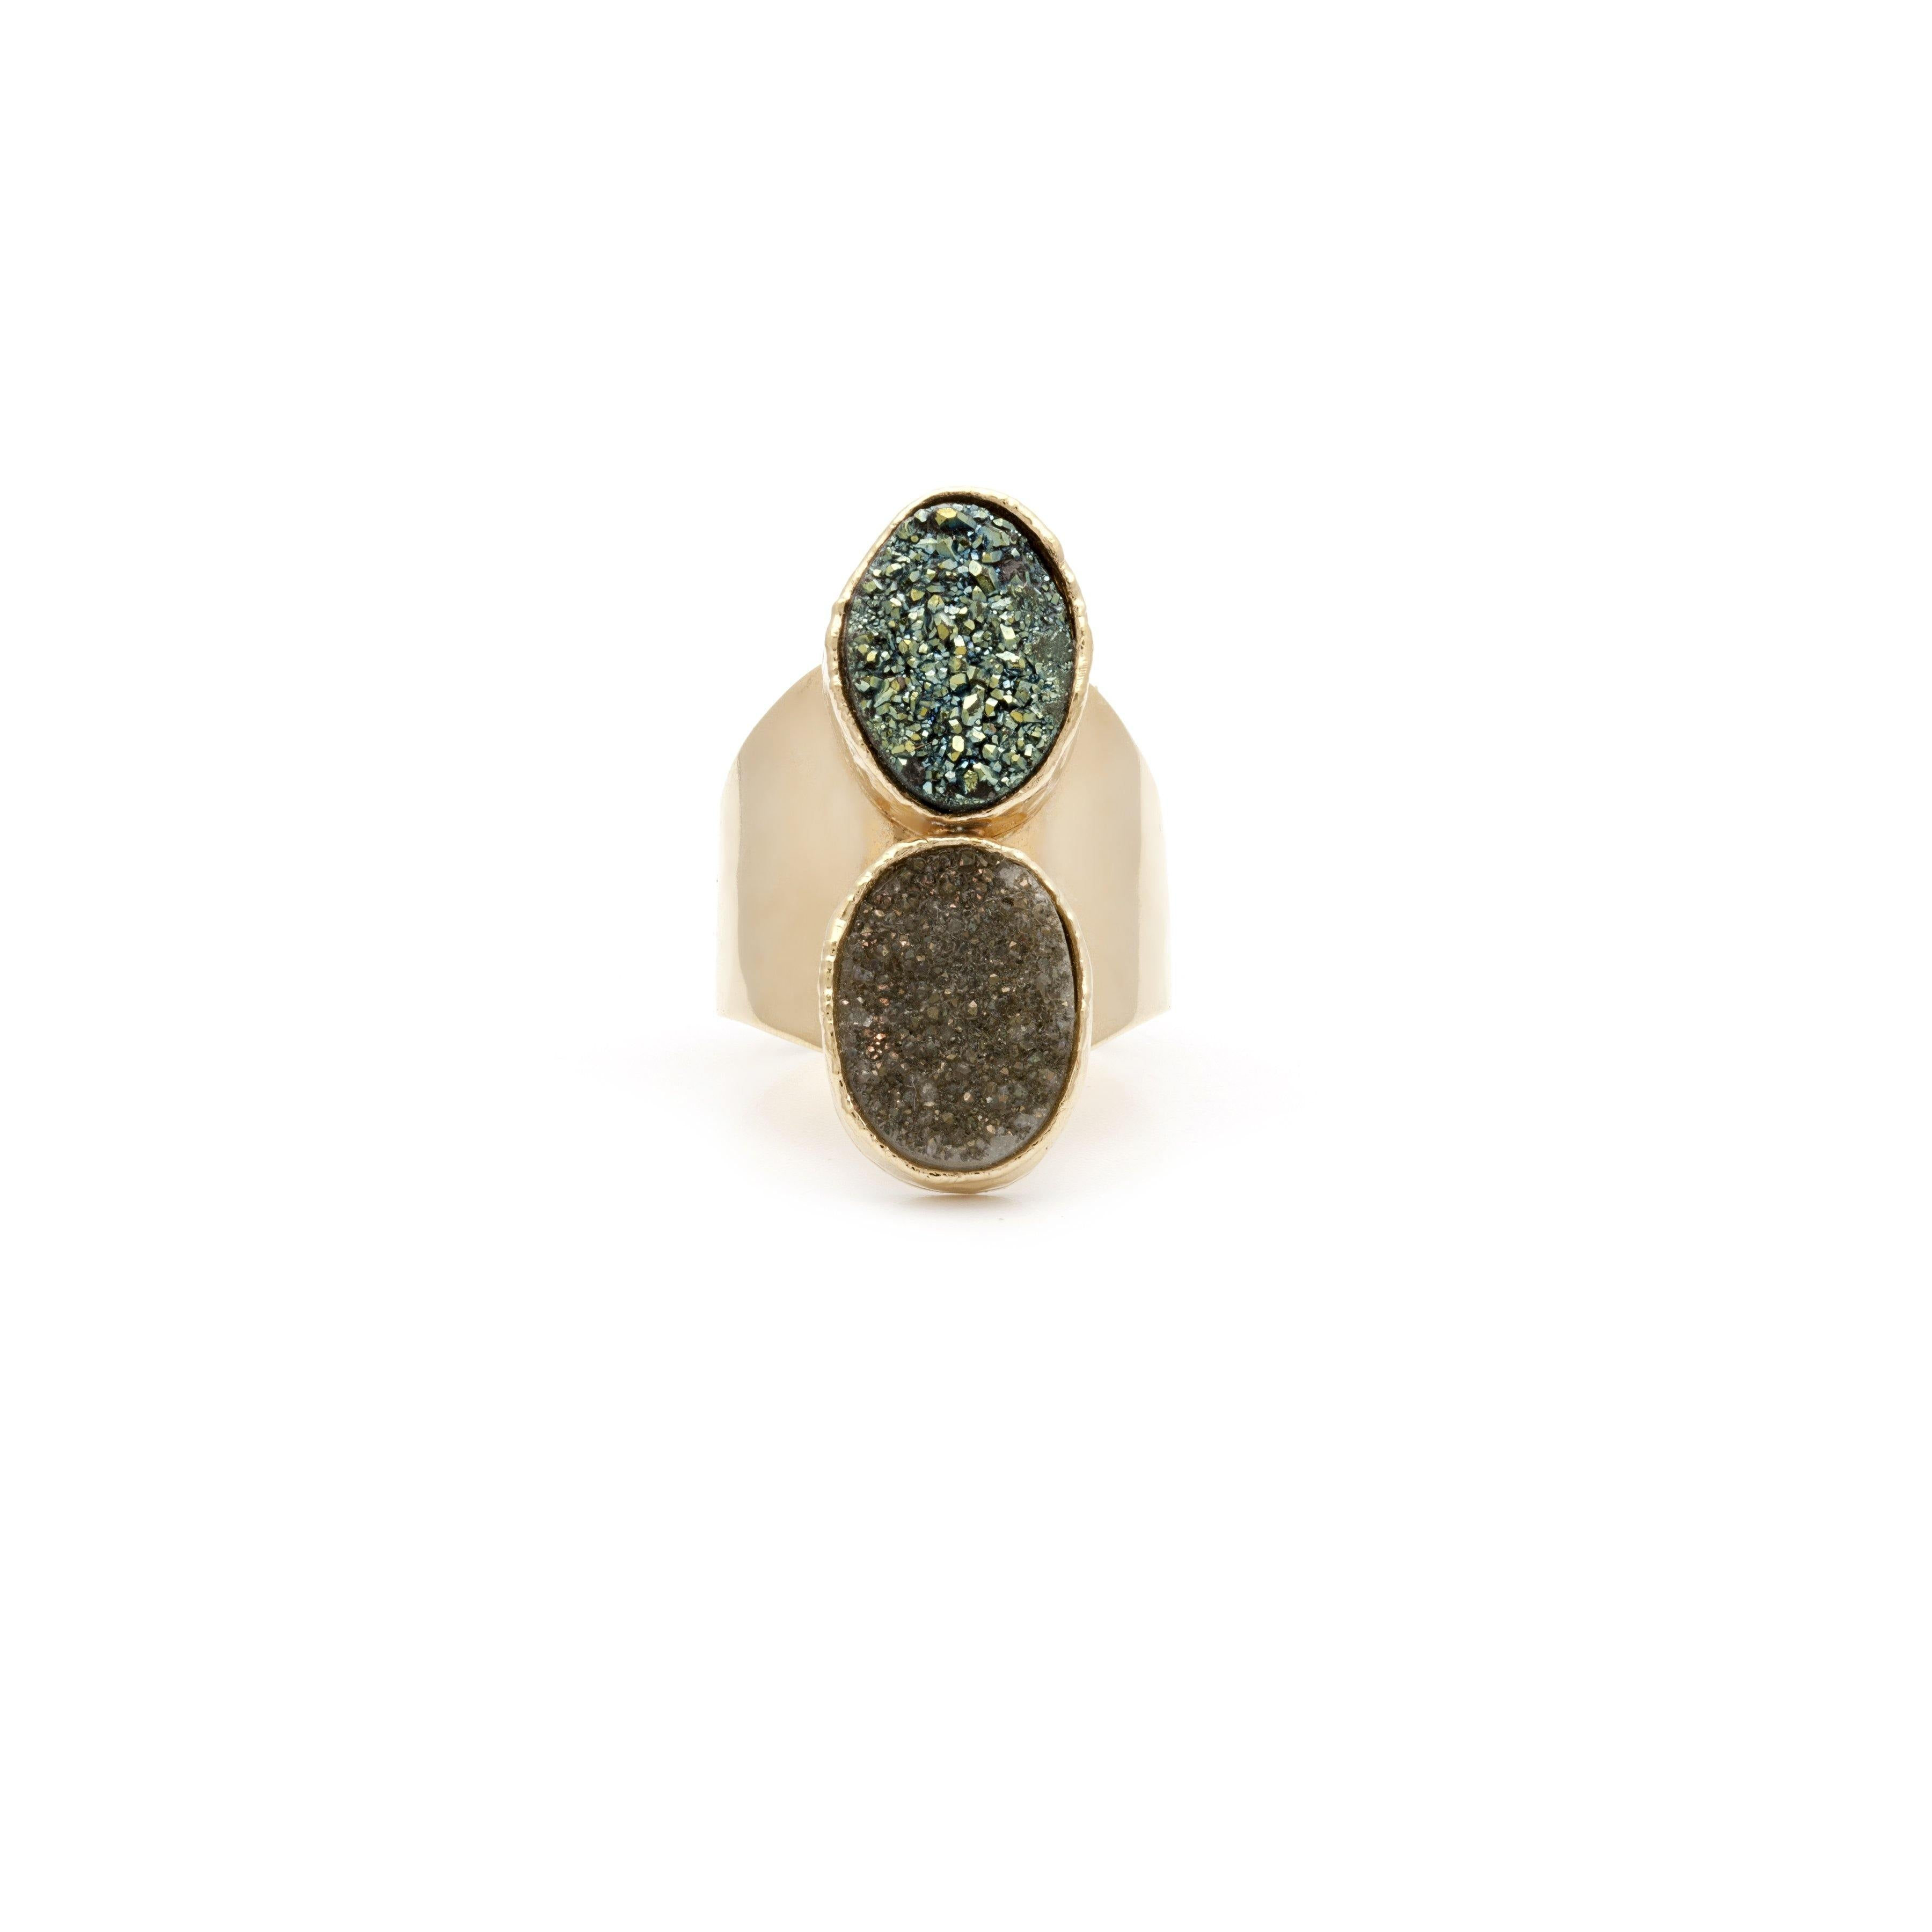 Two Druzy Ring - Irit Sorokin Designs Canadian handmade jewelry